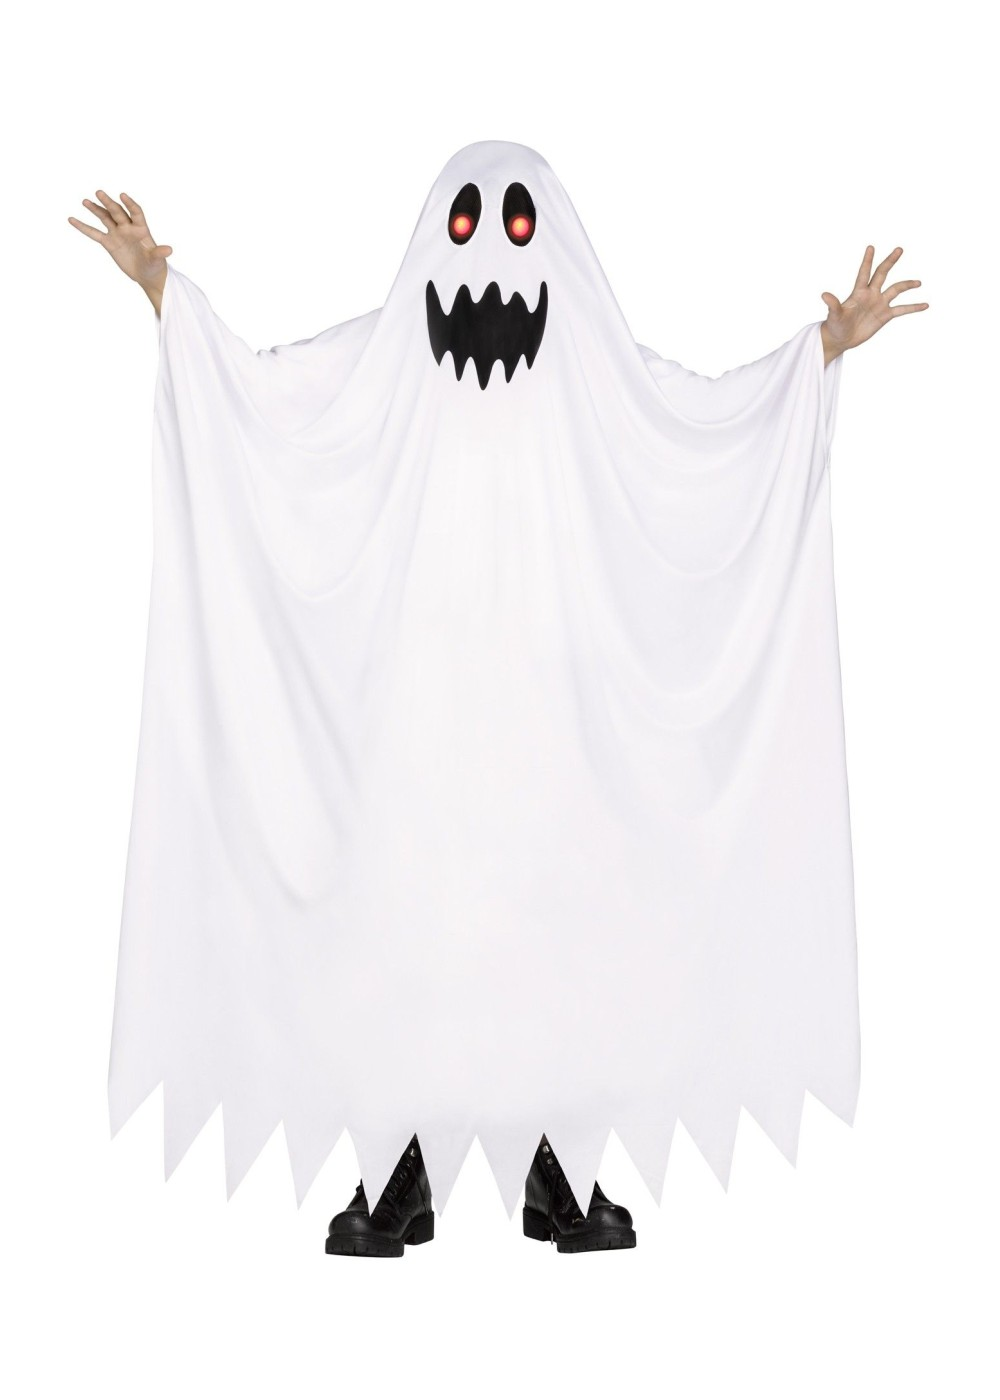 Fade In And Out Ghost Costume